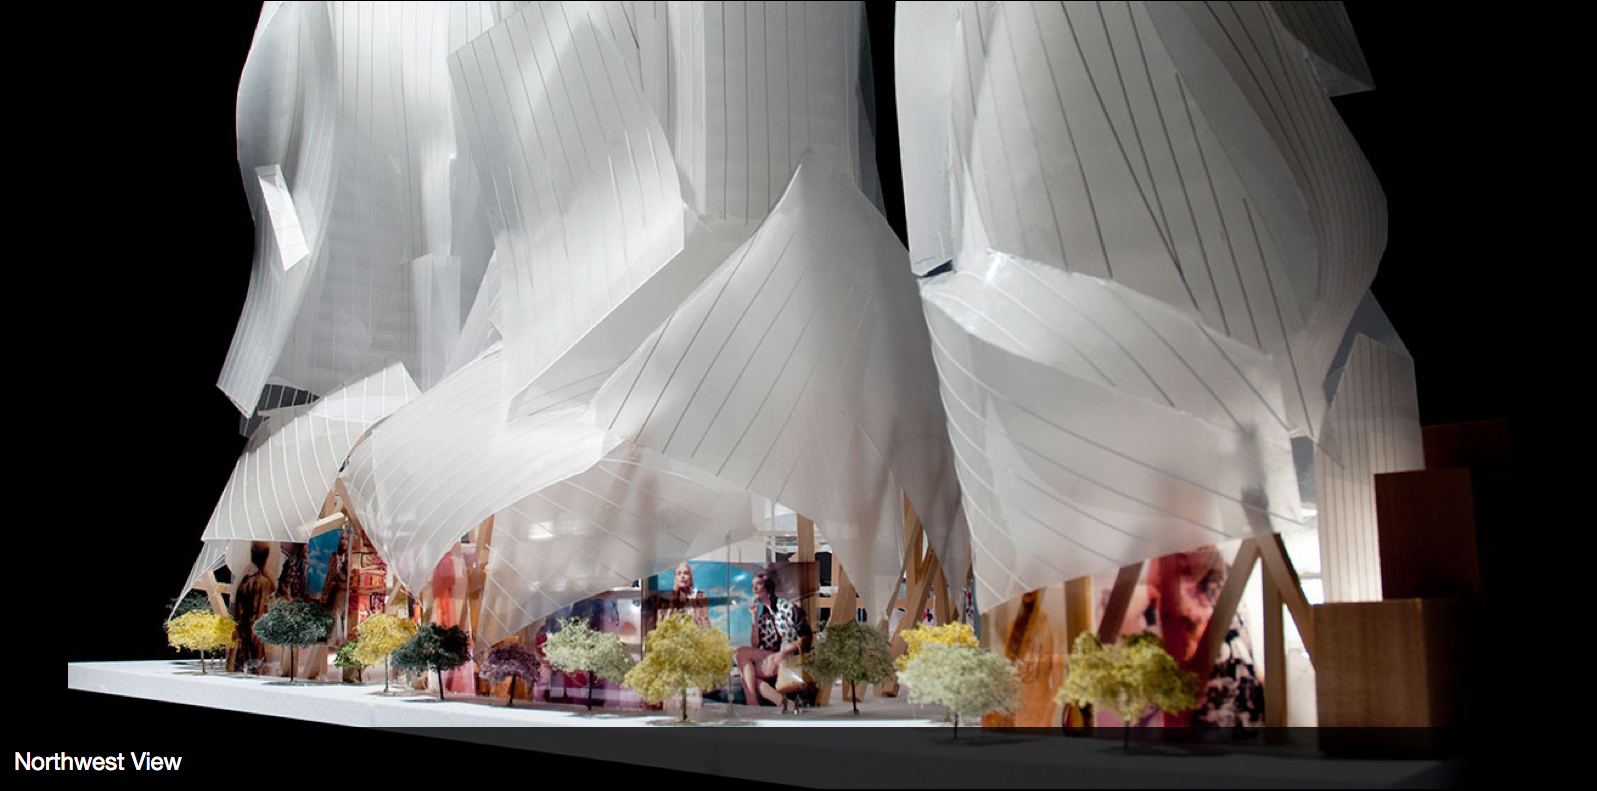 Icon and architecture in the land of mirvish gehry